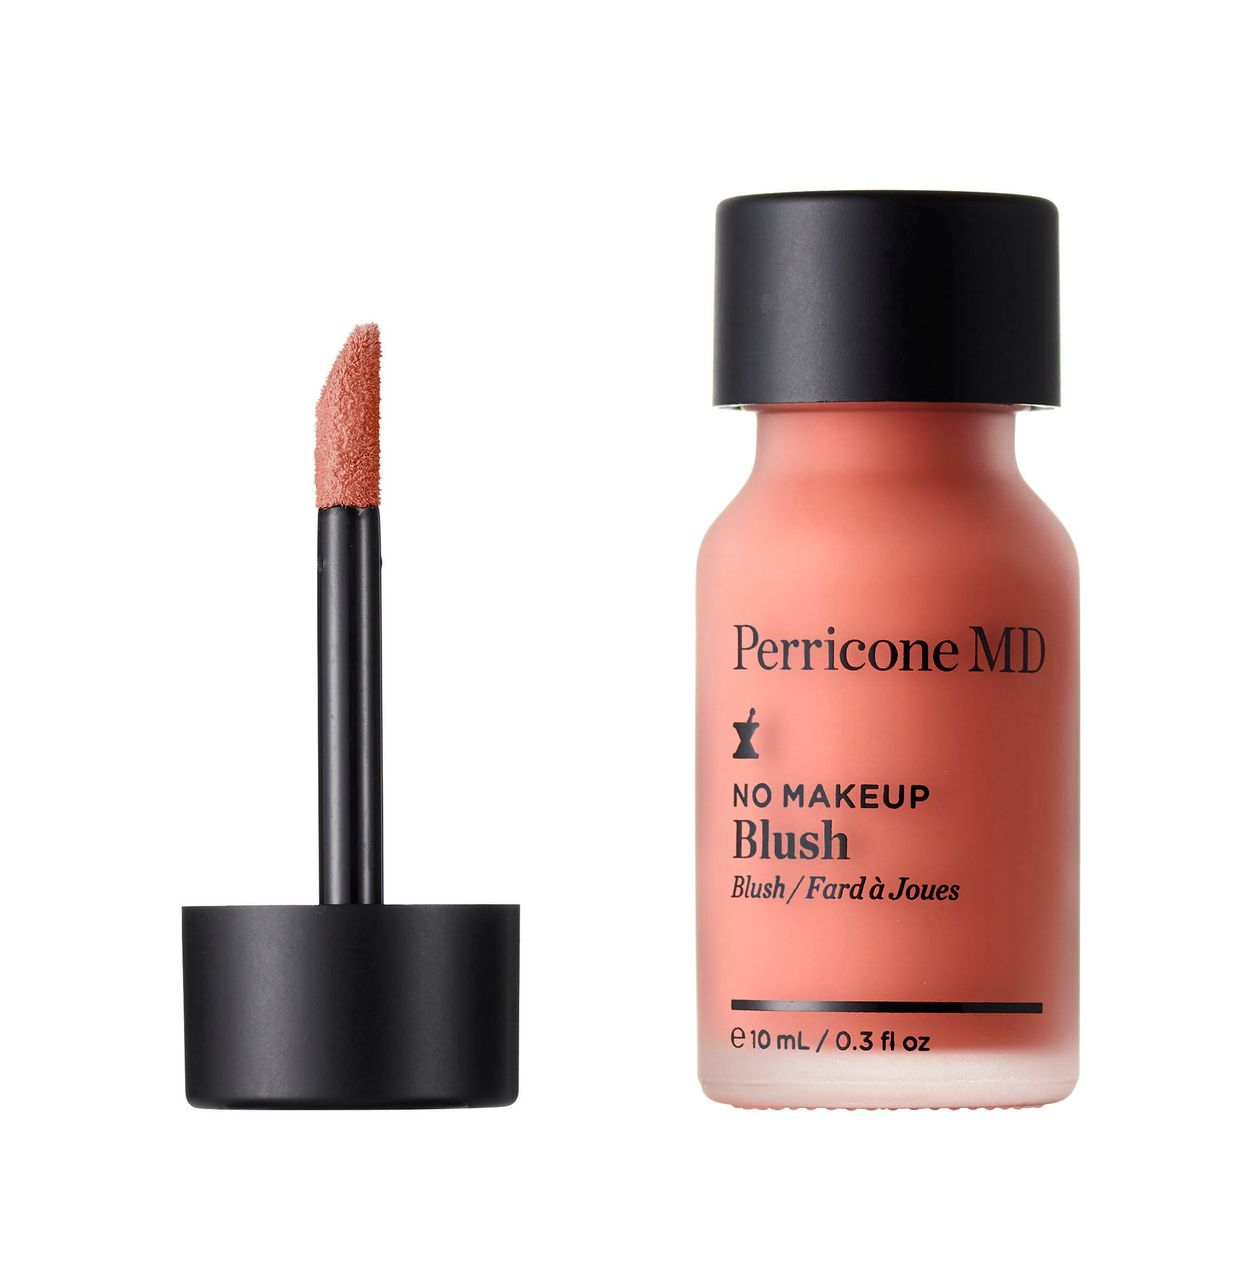 Perricone MD No Makeup Blush